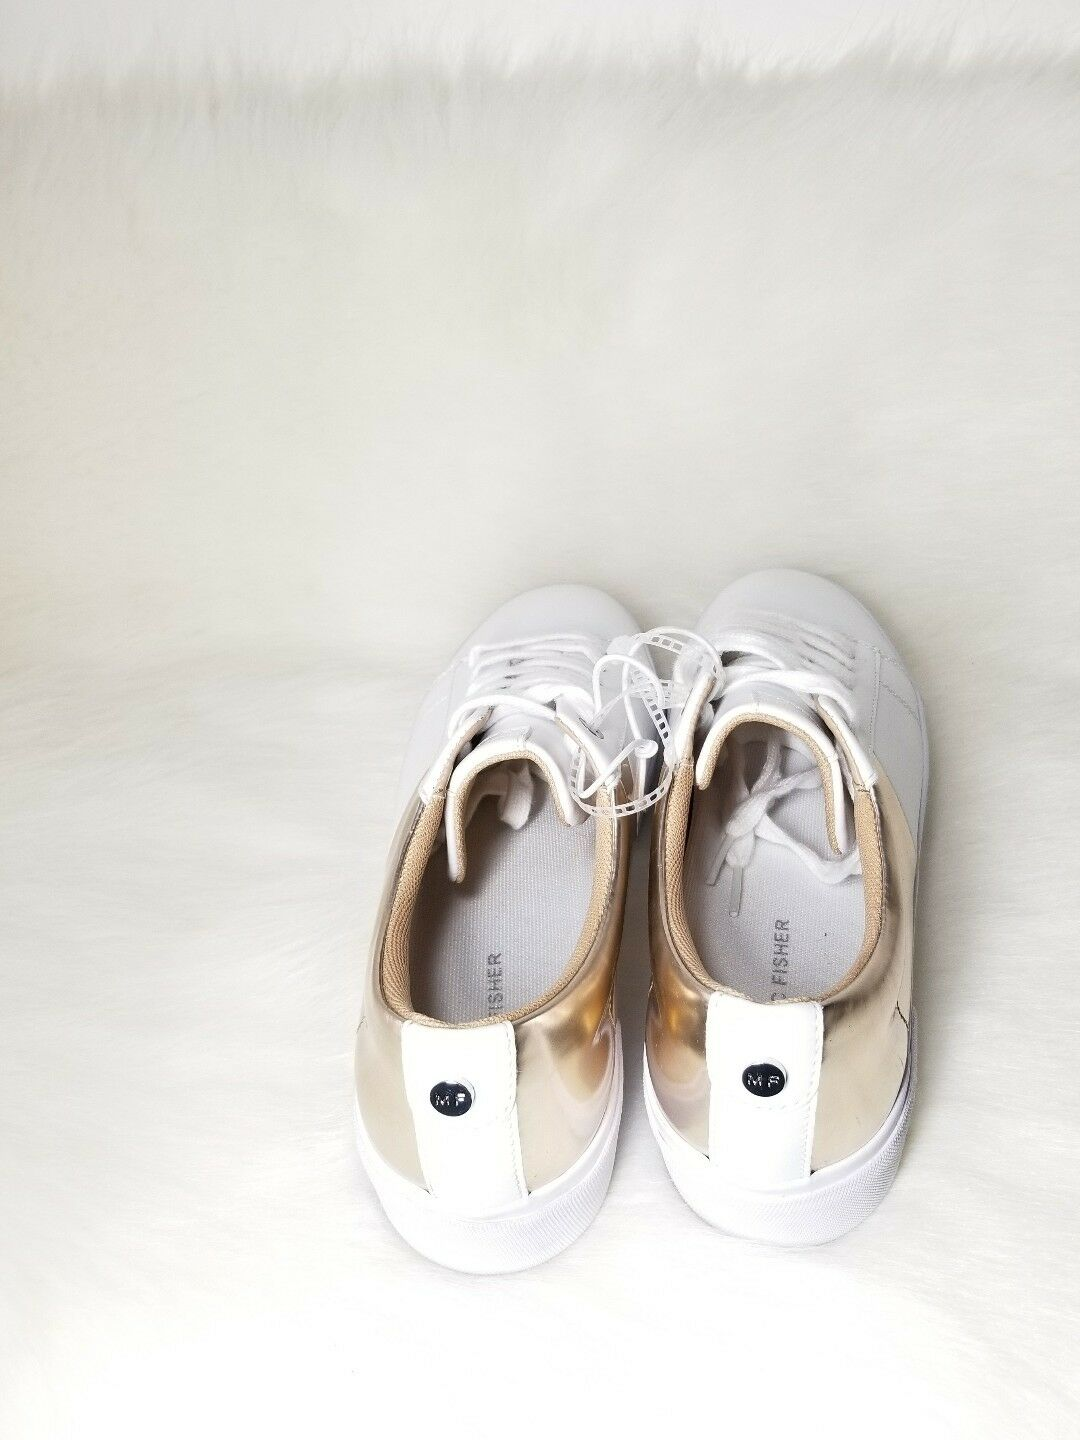 Marc Fisher Platforms Fashion Sneakers Xena pink gold and and and White US 8.5 6bf5ee